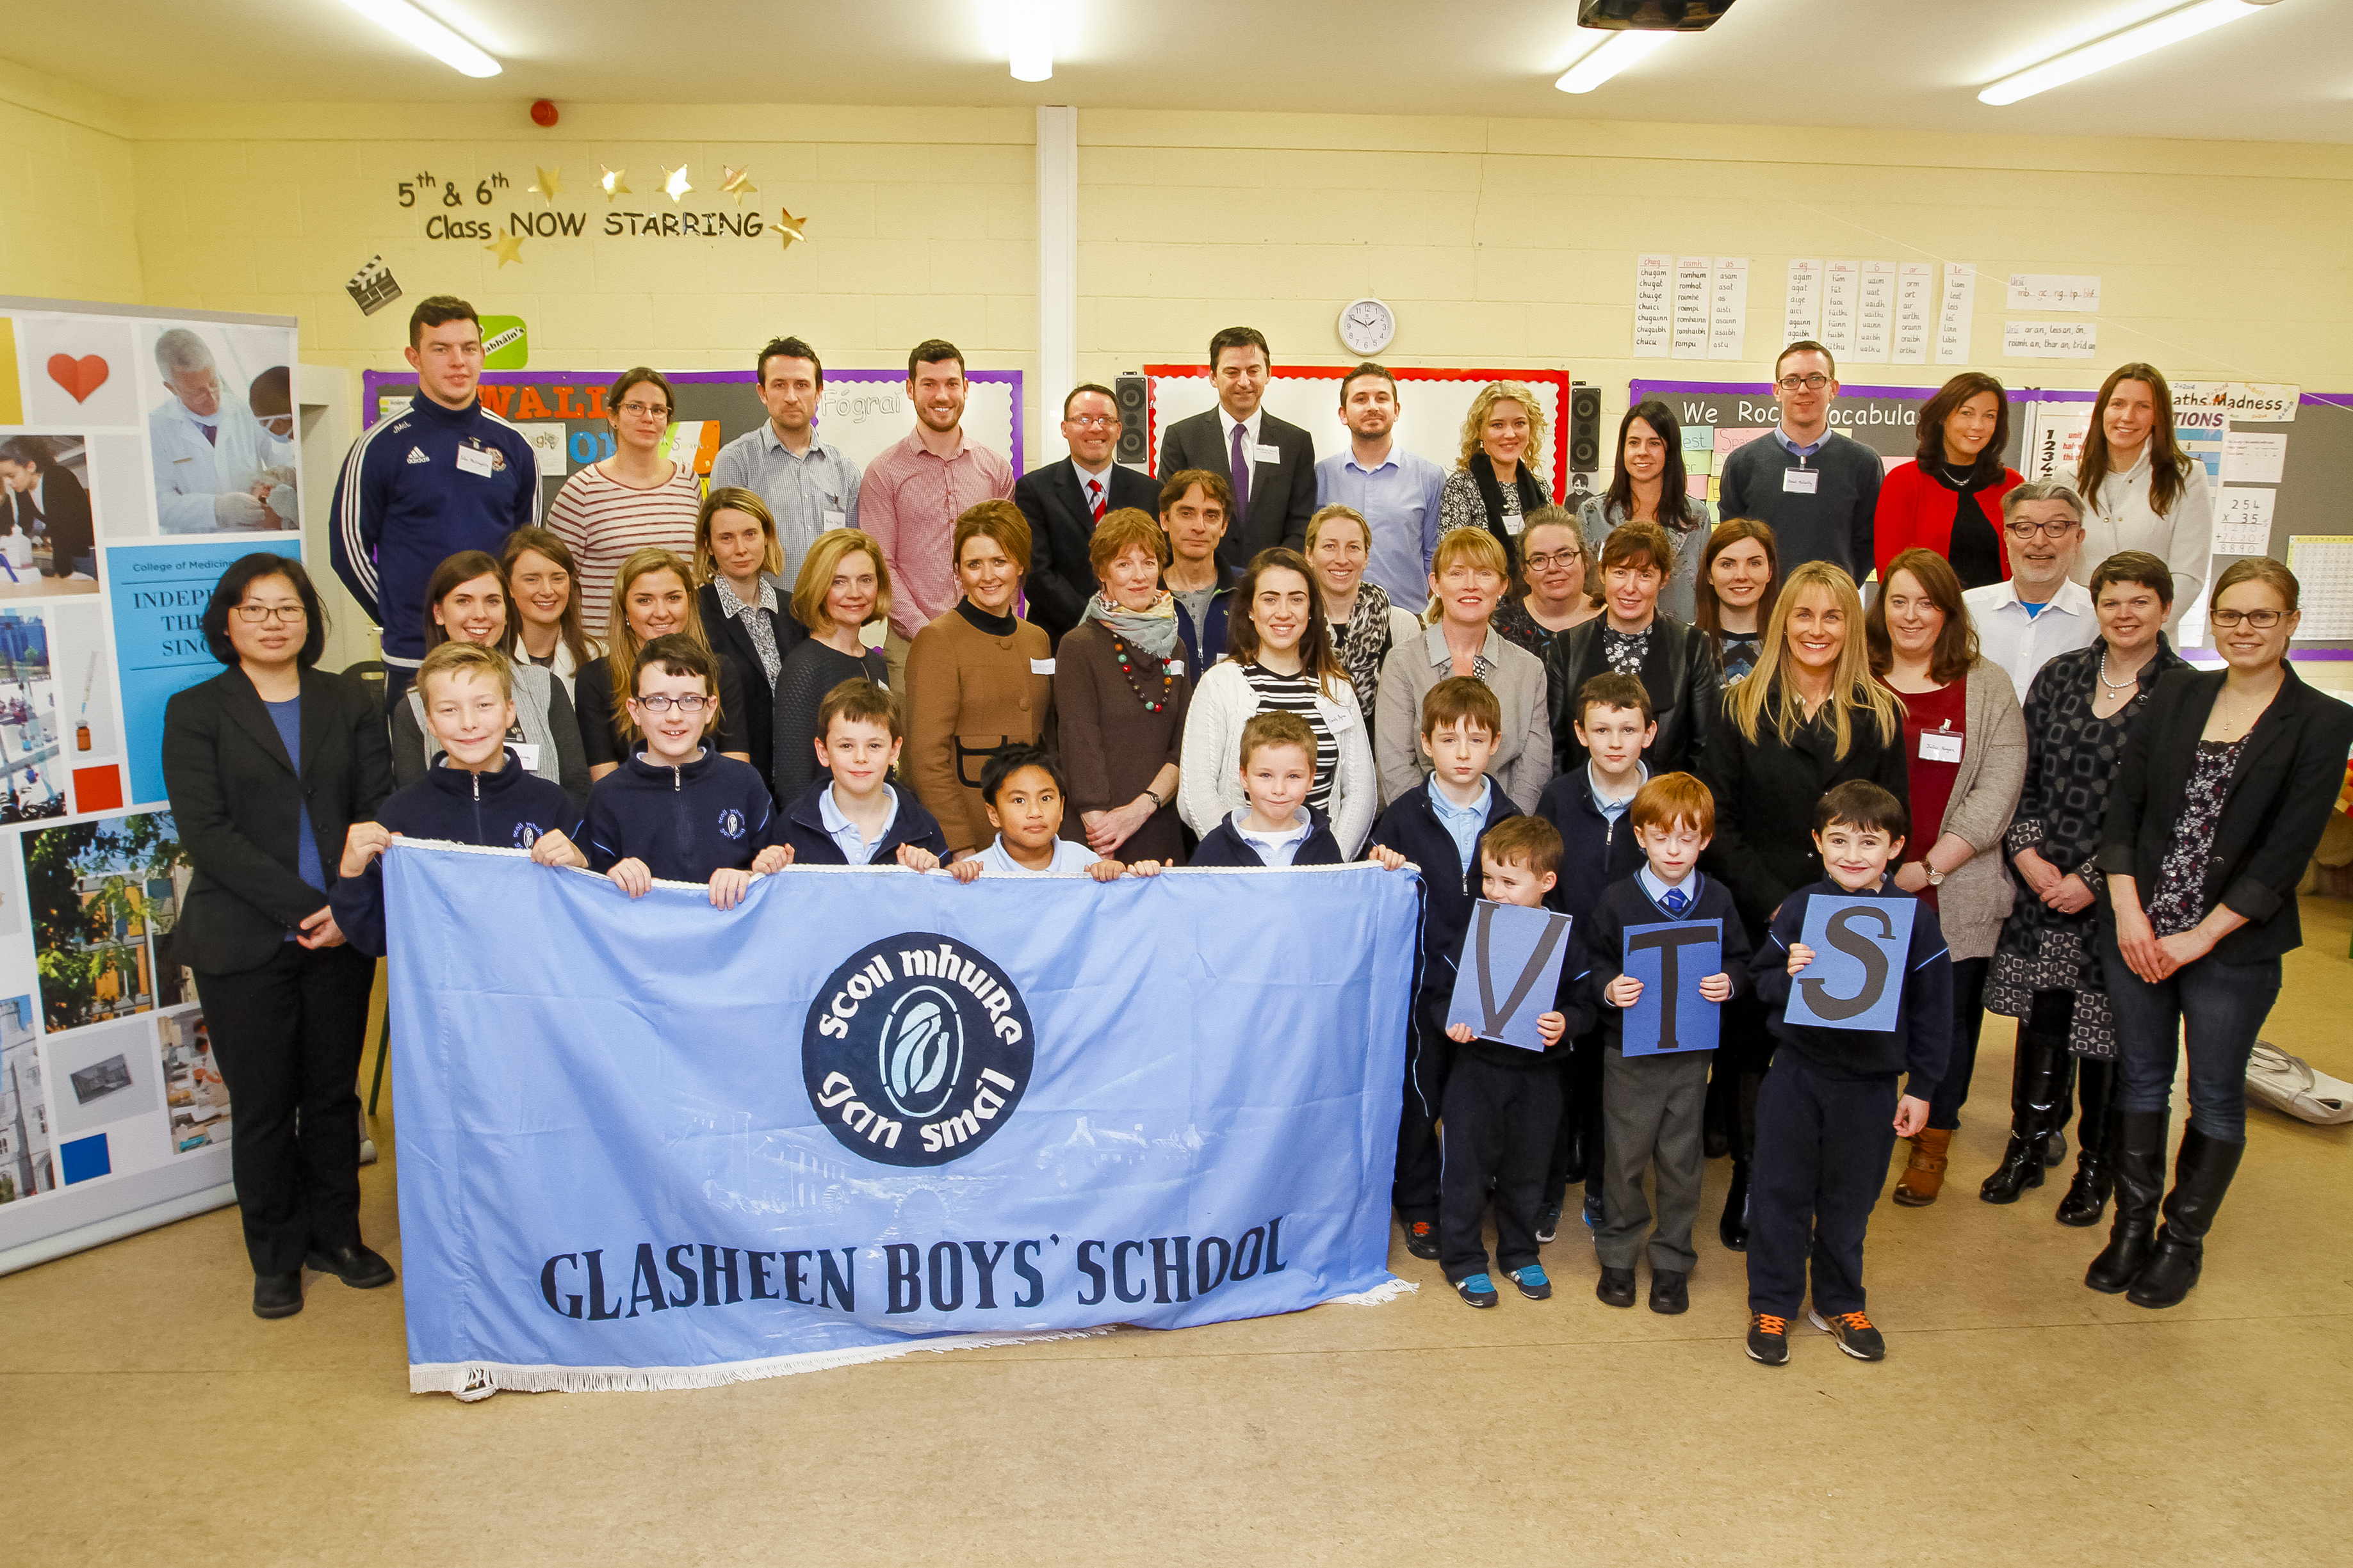 UCC & Glasheen Boys' School Open Their Eyes to Visual Thinking Strategies